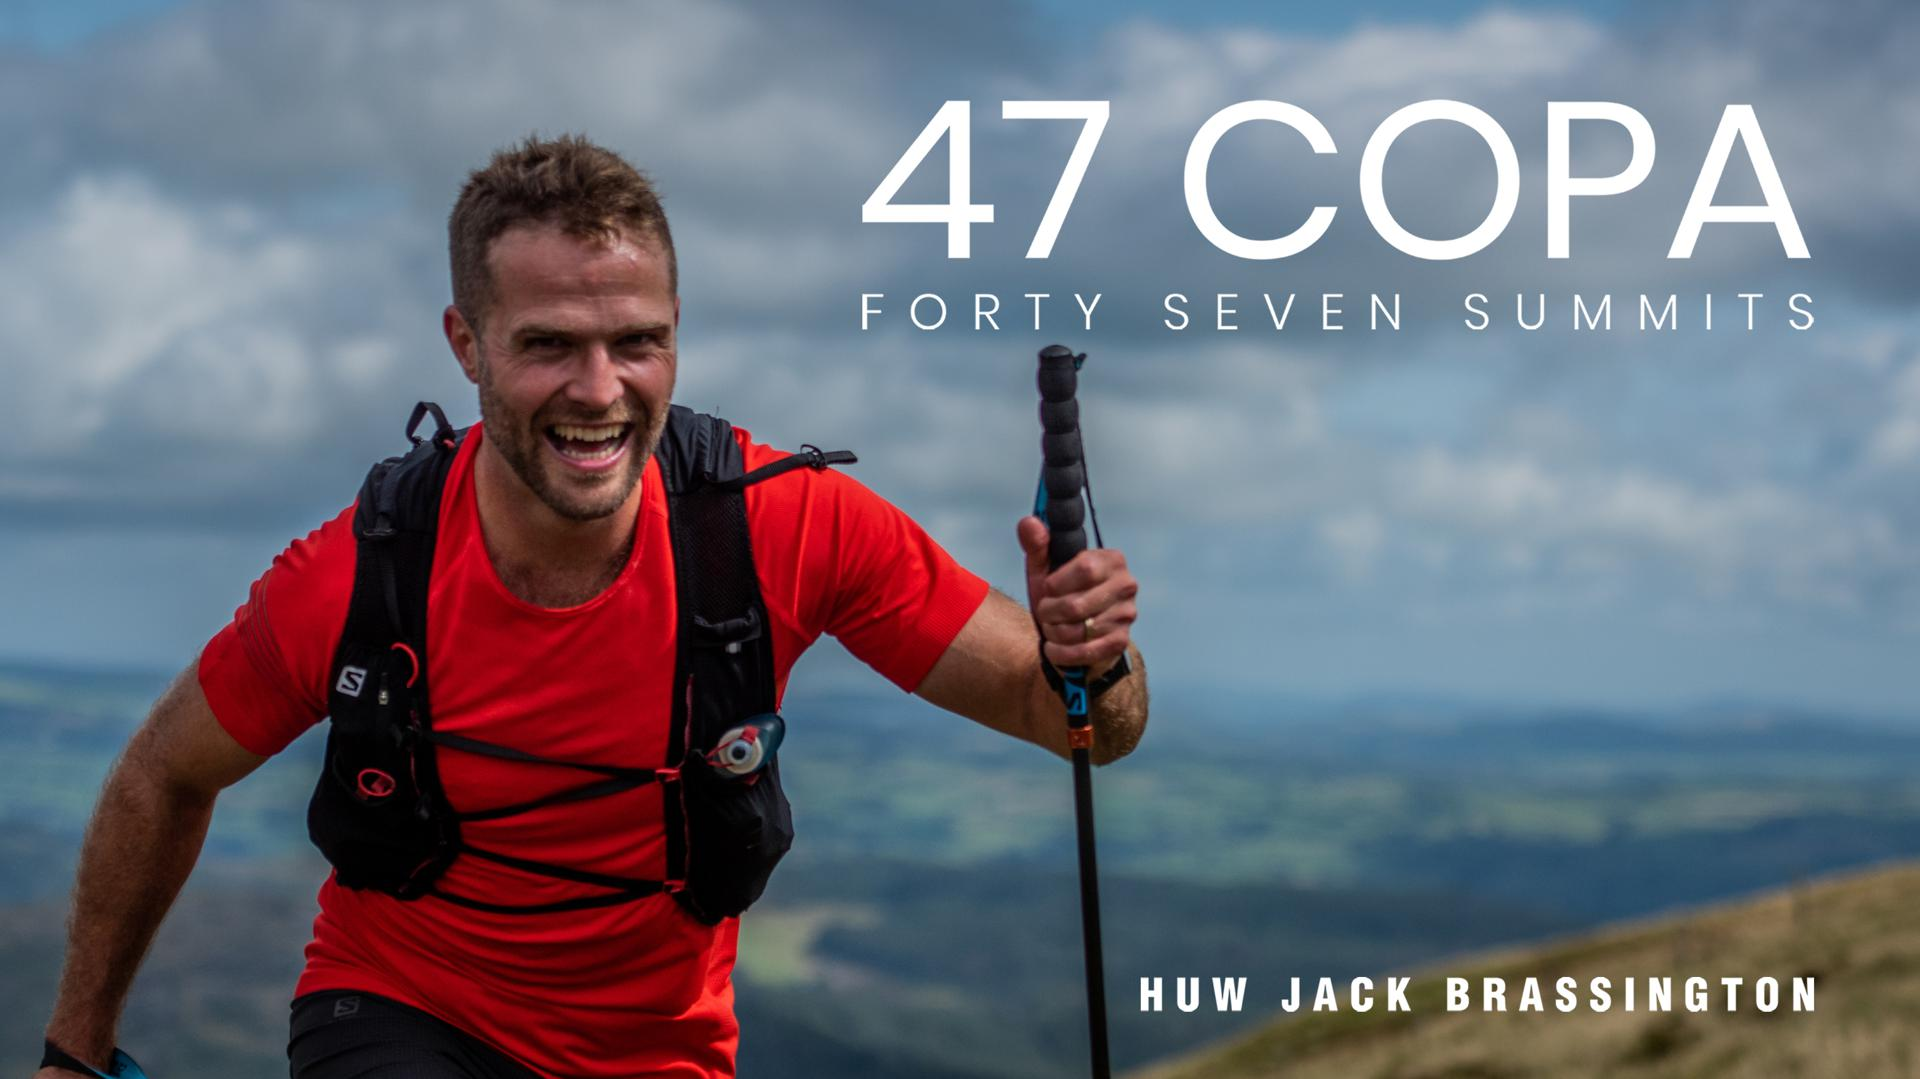 47 COPA | Forty Seven Summits